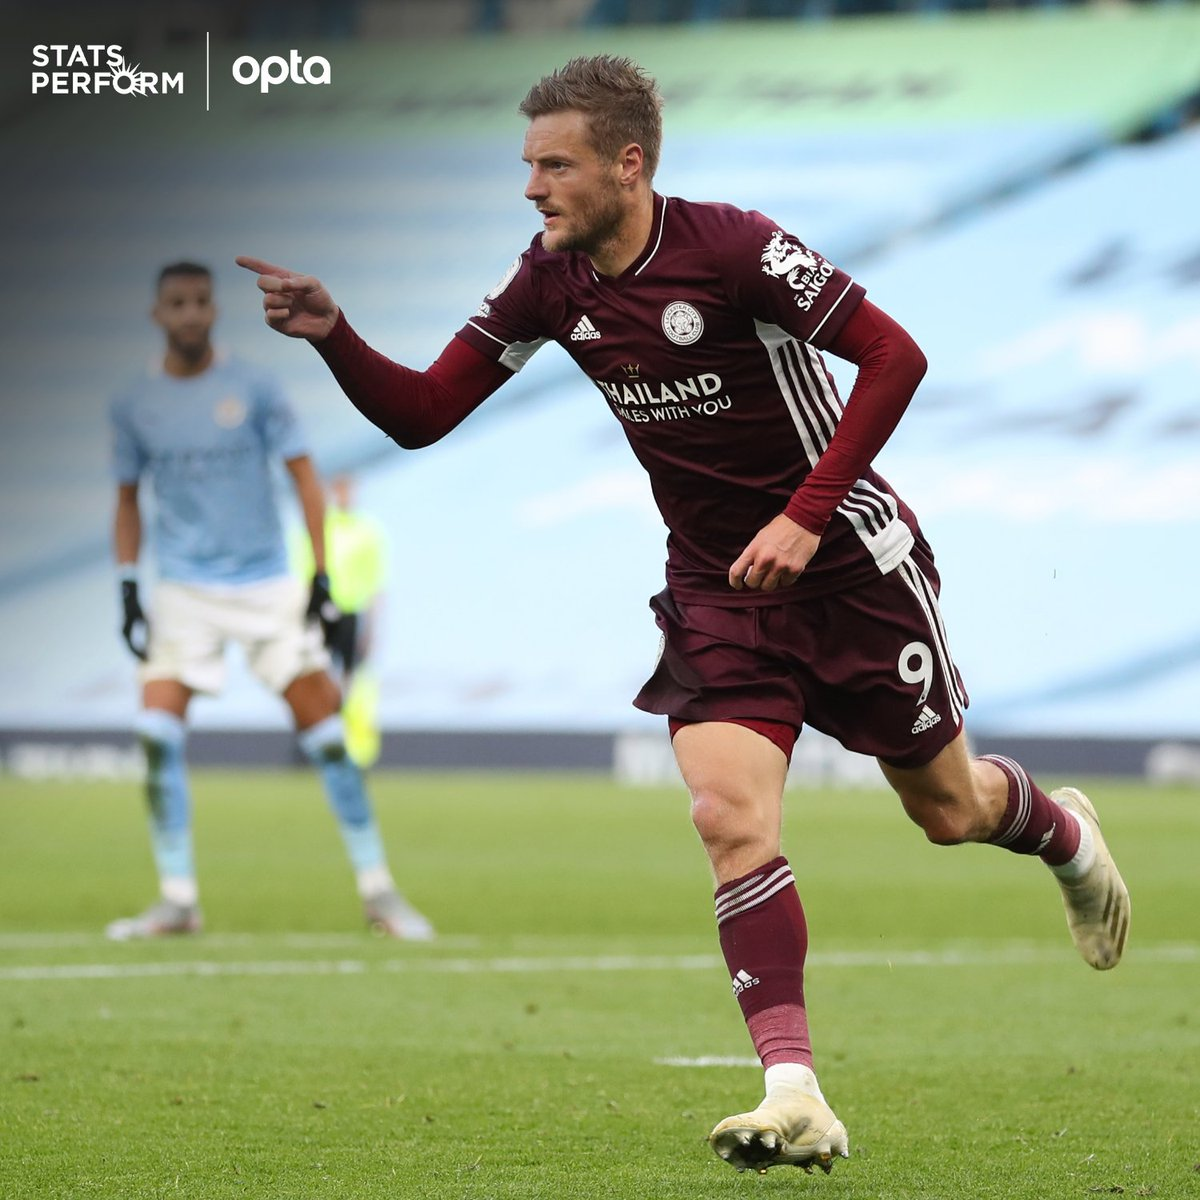 Optajoe On Twitter 2 2 Jamie Vardy Is The First Player To Win Two Penalties And Score Two Penalties In A Single Premier League Game Since Milan Baros For Liverpool